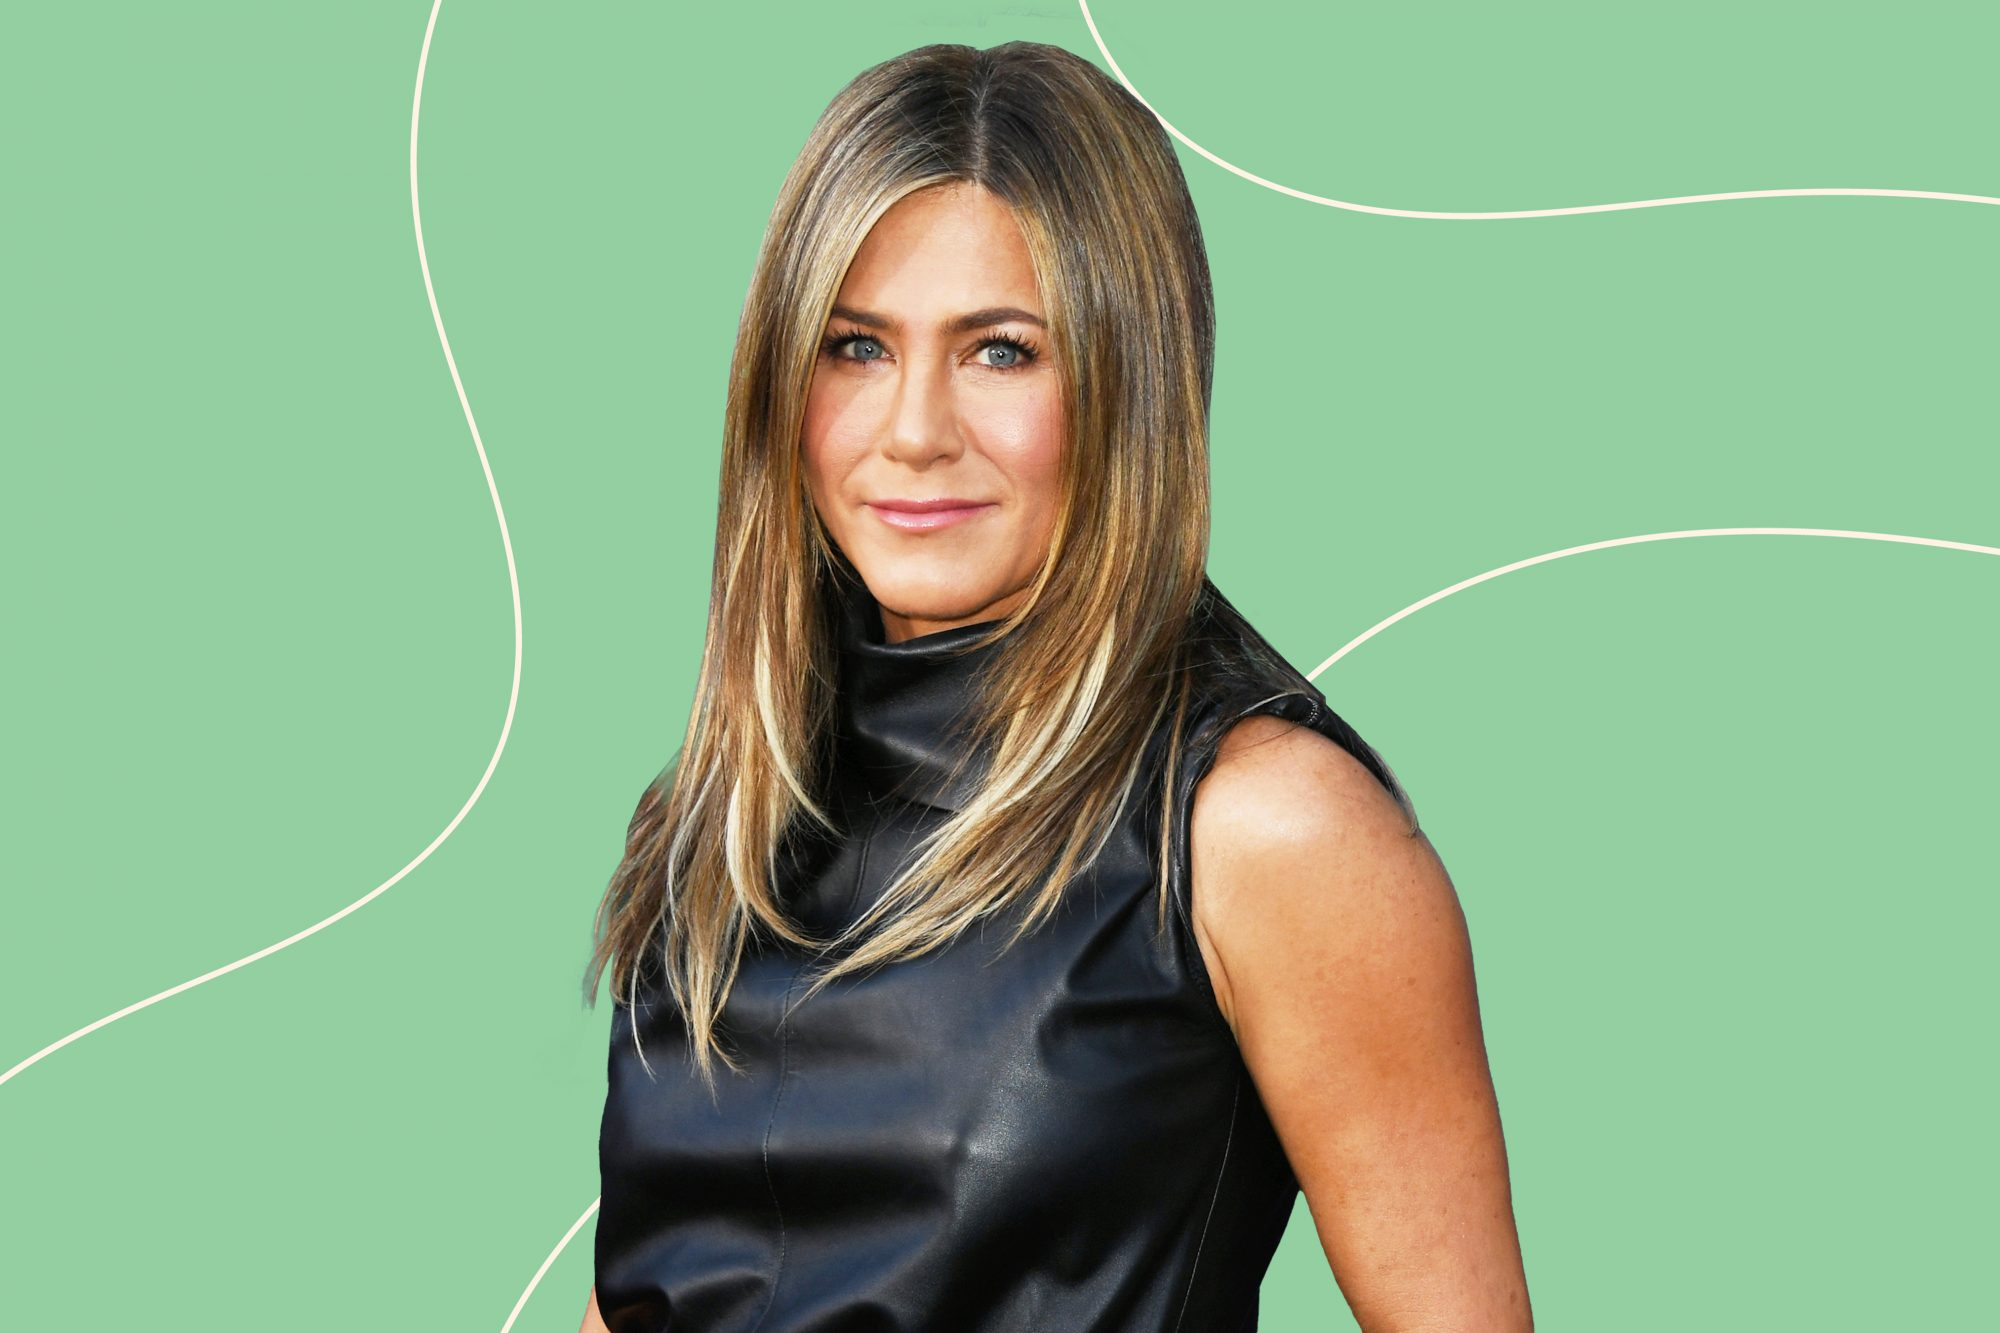 Jennifer-Aniston-Heritage-Store-Rosewater-Spray-GettyImages-1155121231